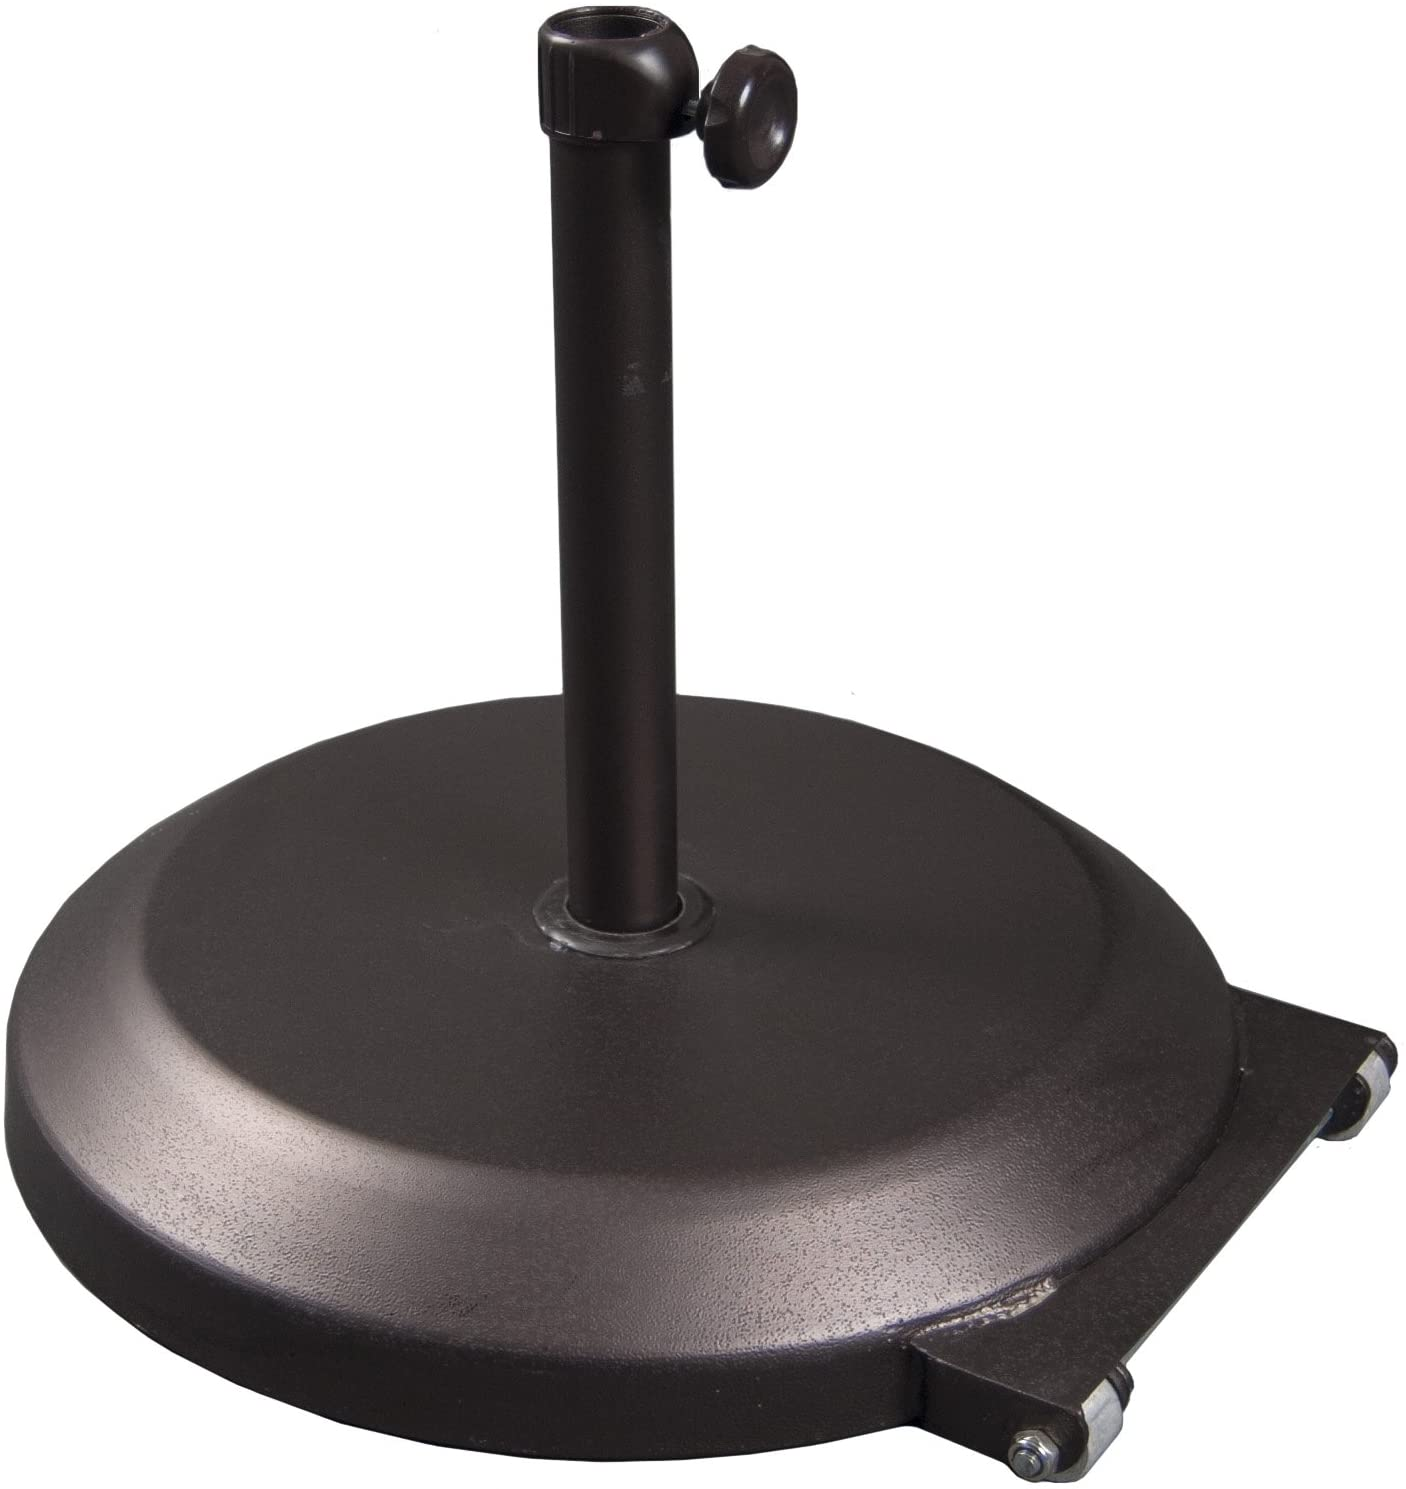 California Umbrella 75 lbs. Round Concrete Weighted Powdercoated Steel Umbrella Base With Wheels, Bronze Frame